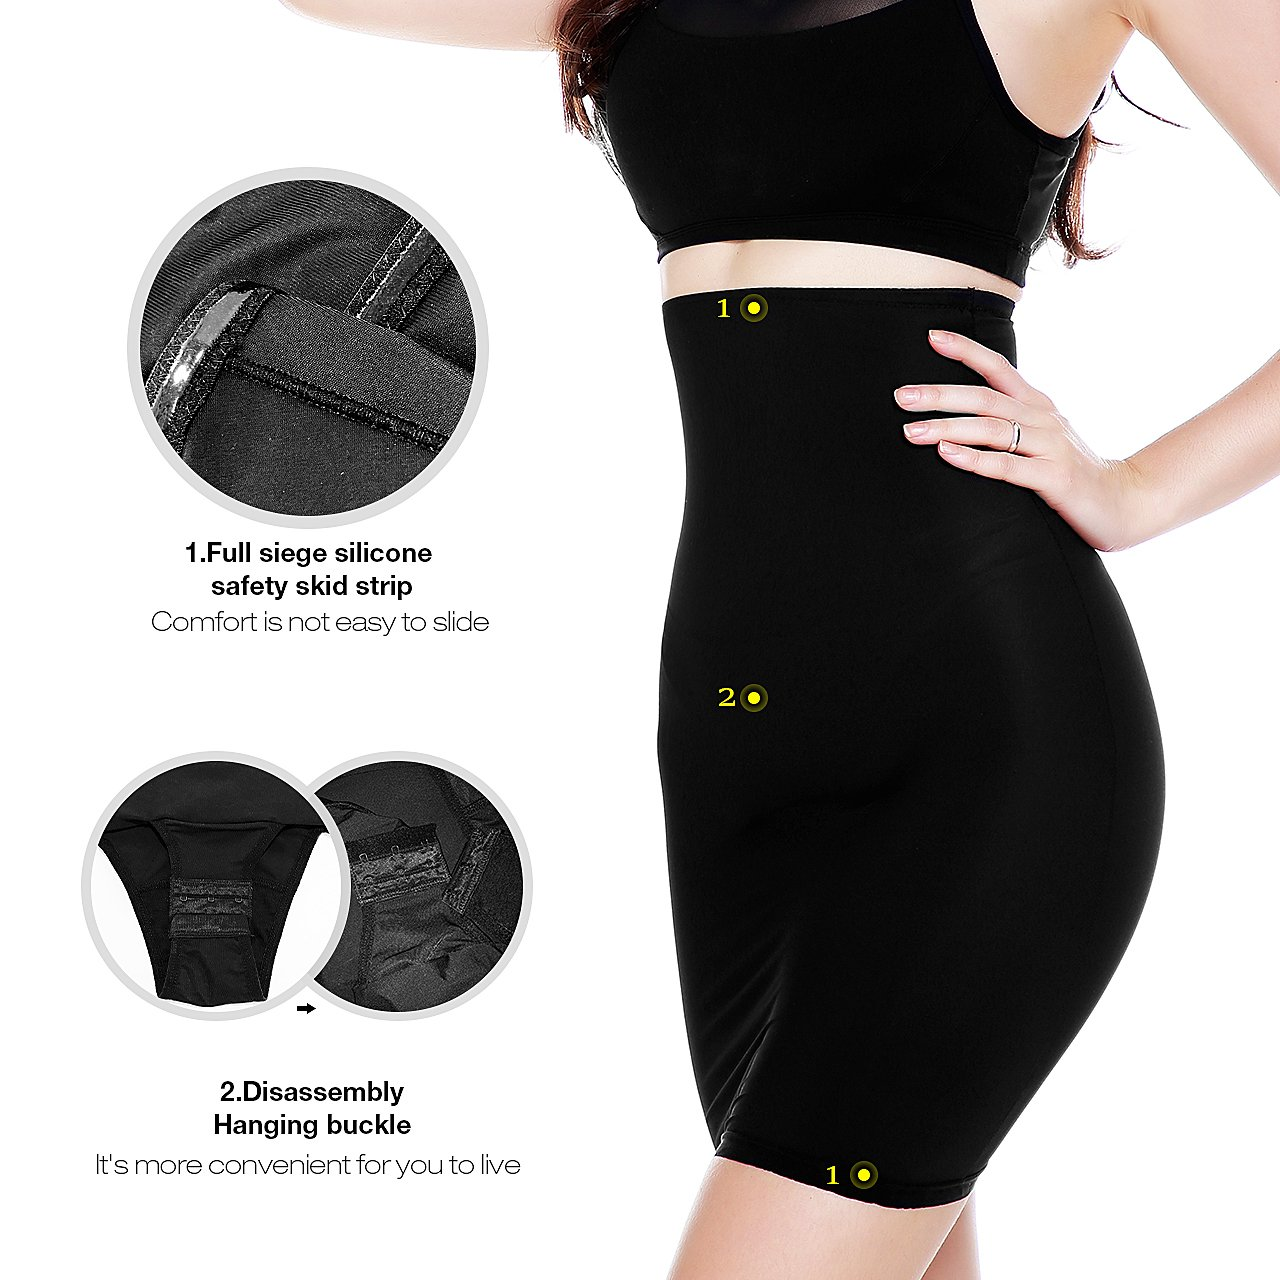 af448319ac MUKATU Women s Invisible High Waist Shaping Panty Slimming Control Skirt  Firm Tummy Control Half Slip Shapewear larger image